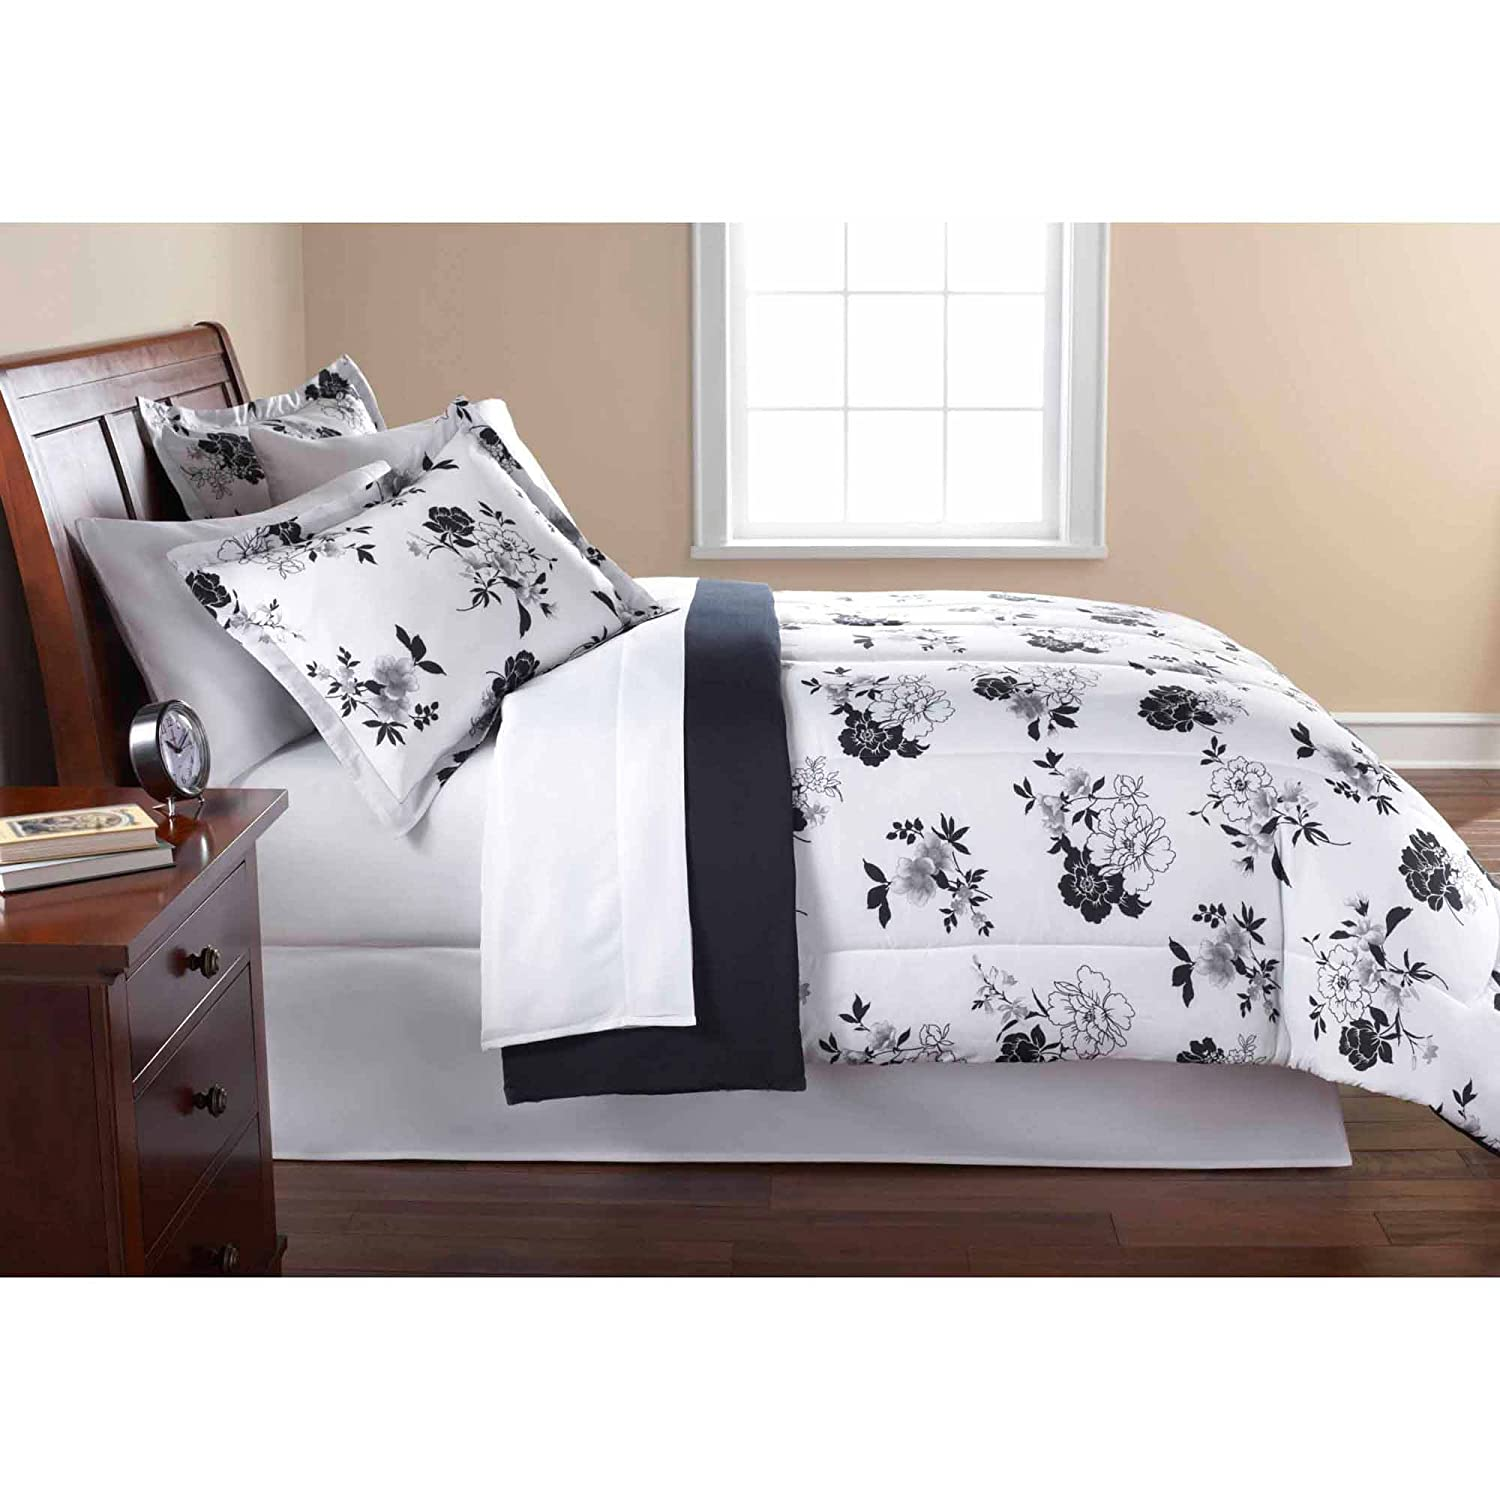 Mainstays 8PC OPP Black White Floral Bed in bag Comforter set Queen CF_8PC_OPP_Q